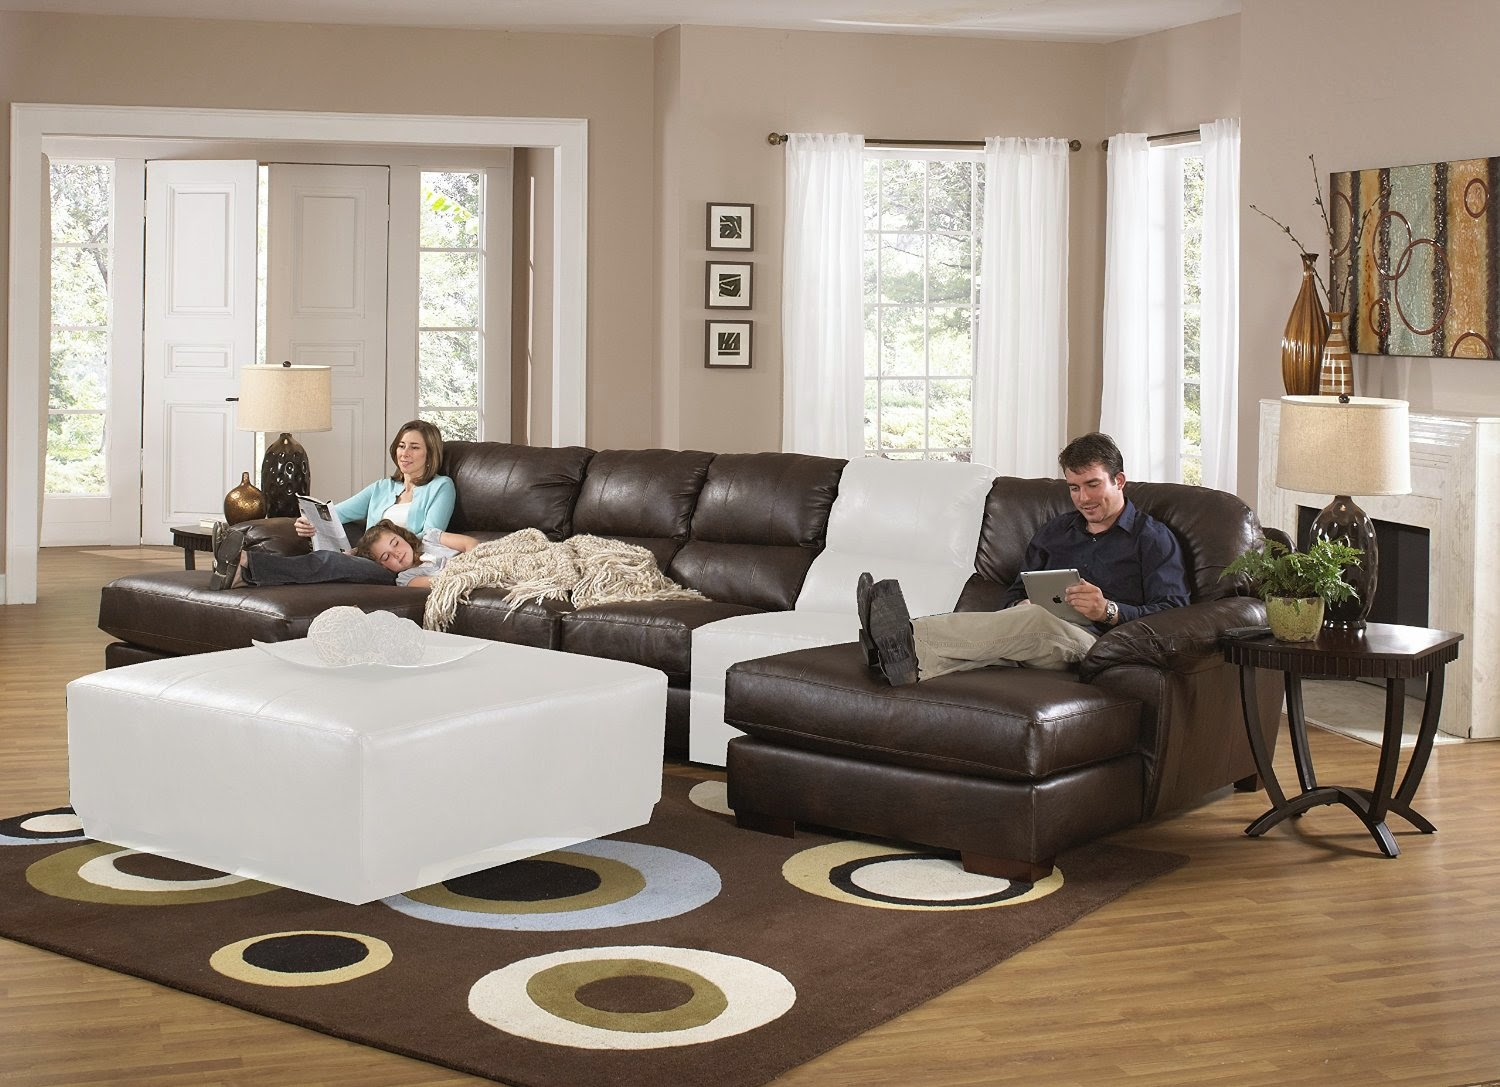 The Best Sectional Sleeper Sofa Reviews Leather With Chaise